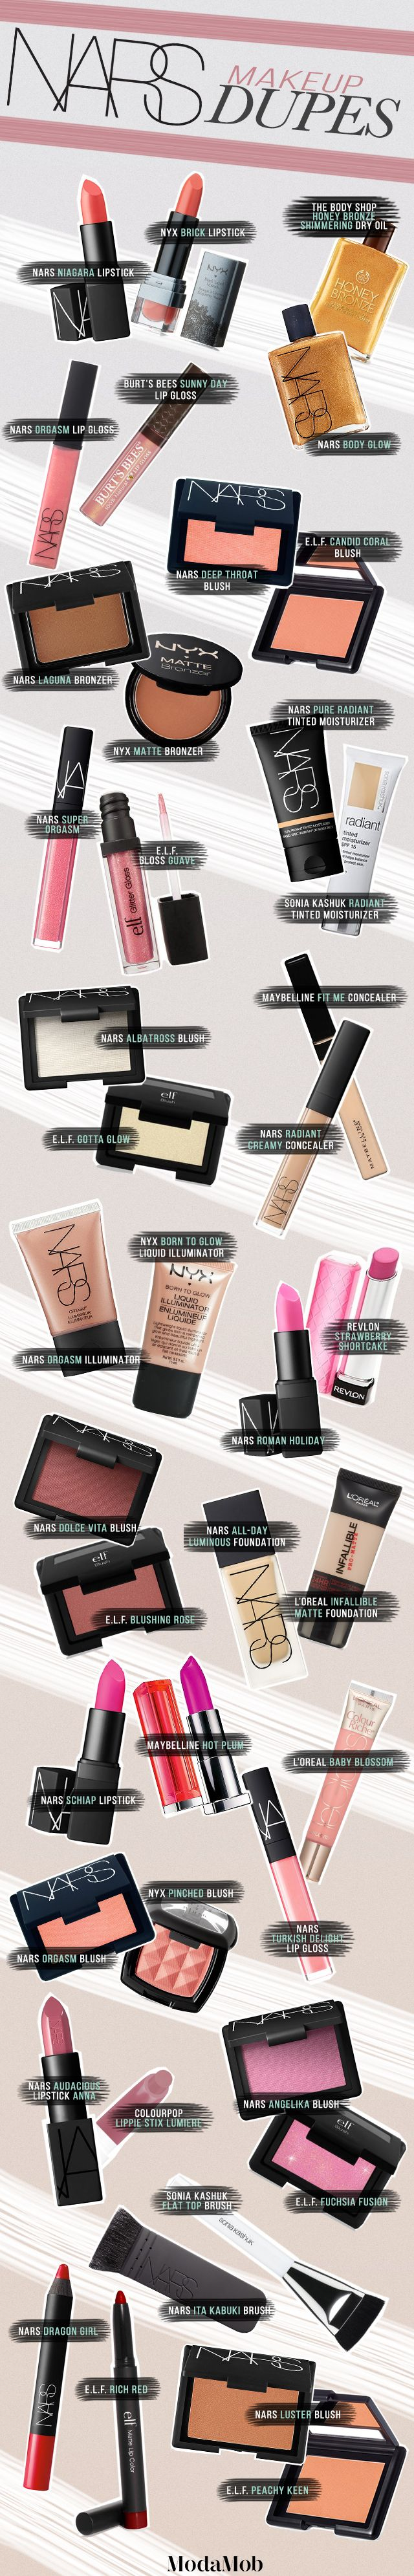 21 must try #NARS #makeup dupes available at your drugstore.